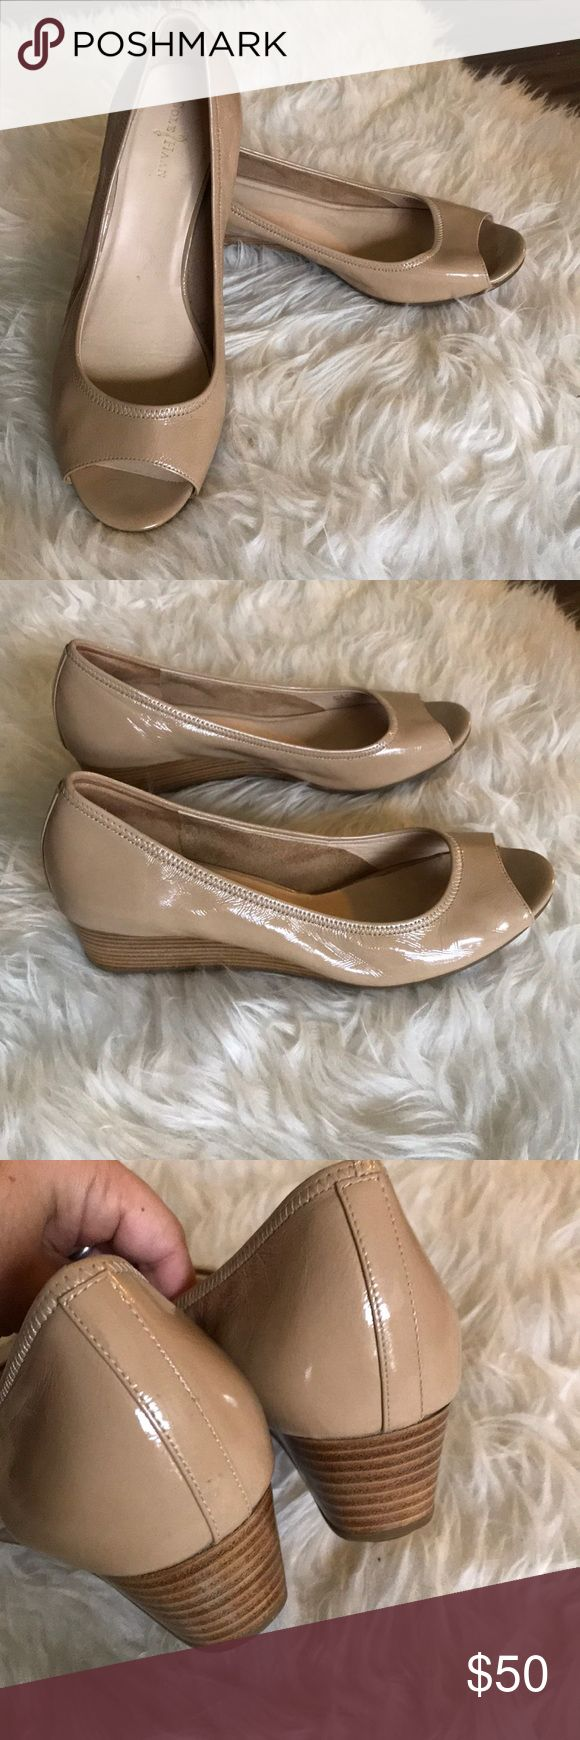 Cole Haan nude patent leather wedges Lovely pair of Cole Haan wedges. Patent leather body with wood wedges. Wedge height 1.5. Peep toe front. These are so pretty. Nike air technology makes these comfortable and stylish! Cole Haan Shoes